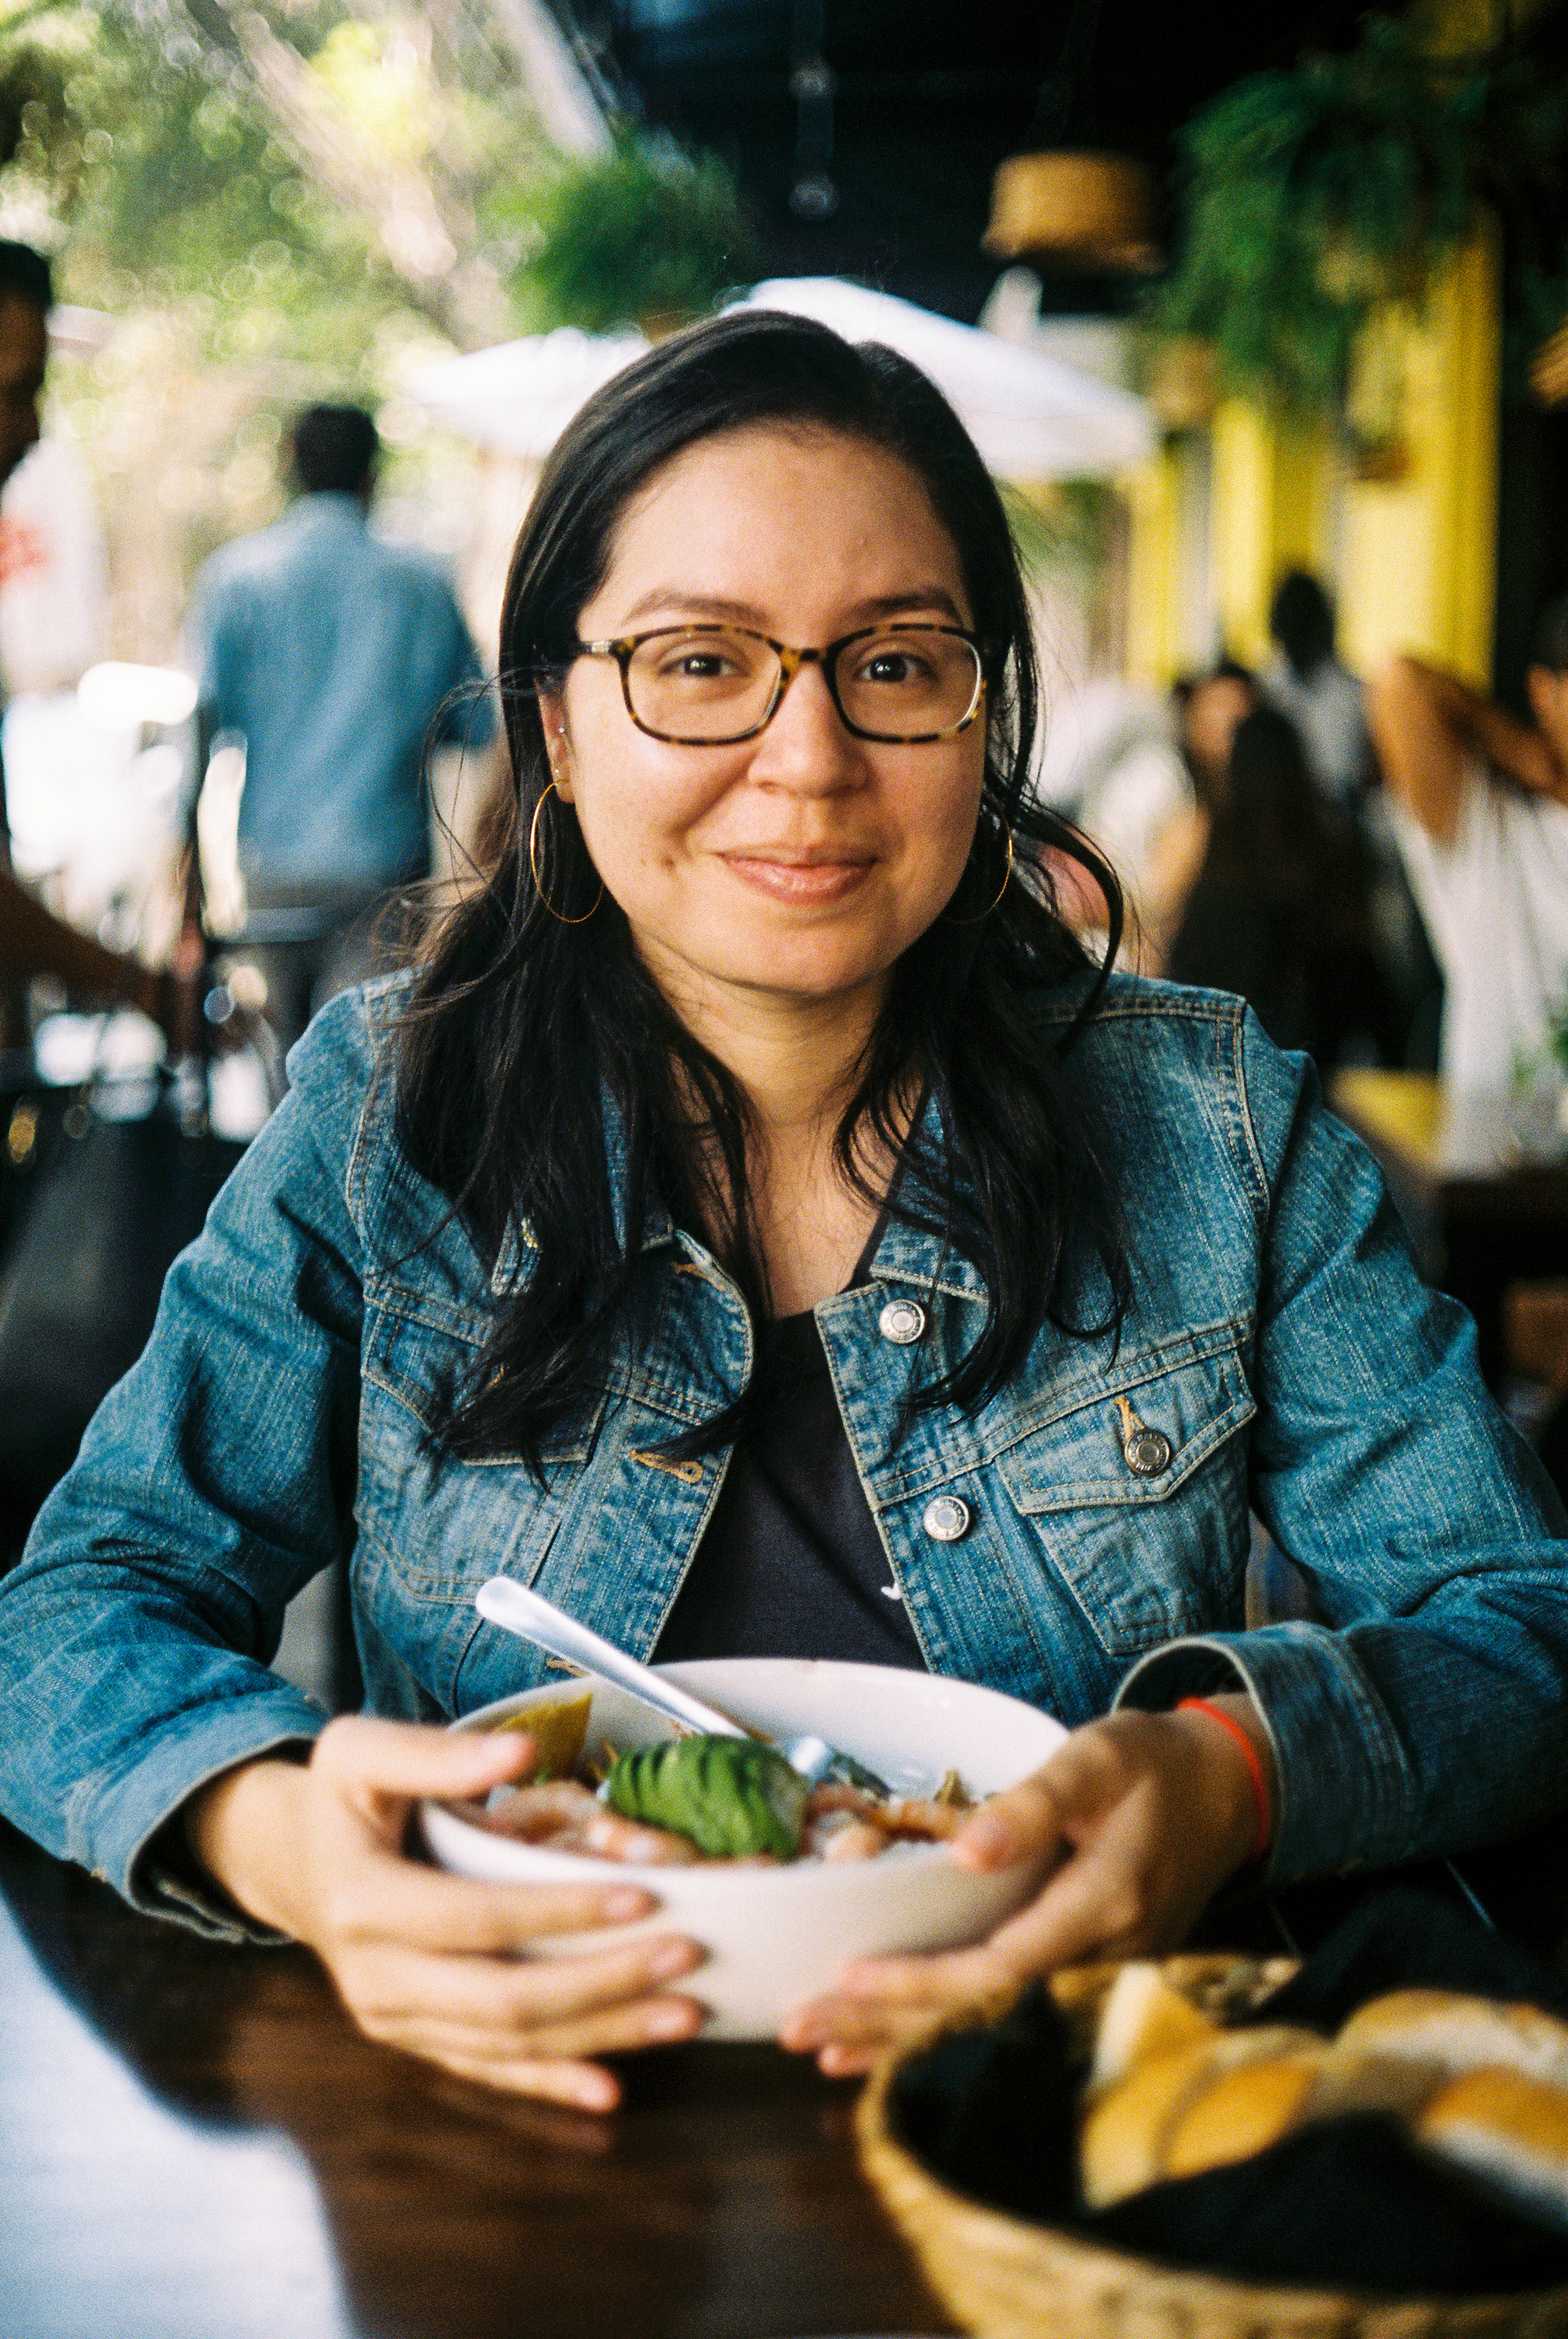 Hi, I'm Muriel. - I'm a writer and editor living in Atlanta. I write about tech, arts & culture, food, as well as personal essays. I also work as a content strategist/writer for B2B and SaaS startup clients on a contract basis.I have bylines at The Guardian, Medium, City Lab, VICE, Splinter News, Patreon, The Washington Post, Atlanta Magazine, The Bitter Southerner, and others.Currently, I'm the managing editor at Hypepotamus — a news publication covering technology and innovation in the Southeast. In a previous life, I was a writer/editor at TreeHugger and an associate editor at a women's business magazine.You can find me on Twitter, where I often document my quest to find the best tamales and my slight obsession with cheap airfare.Let's chat!